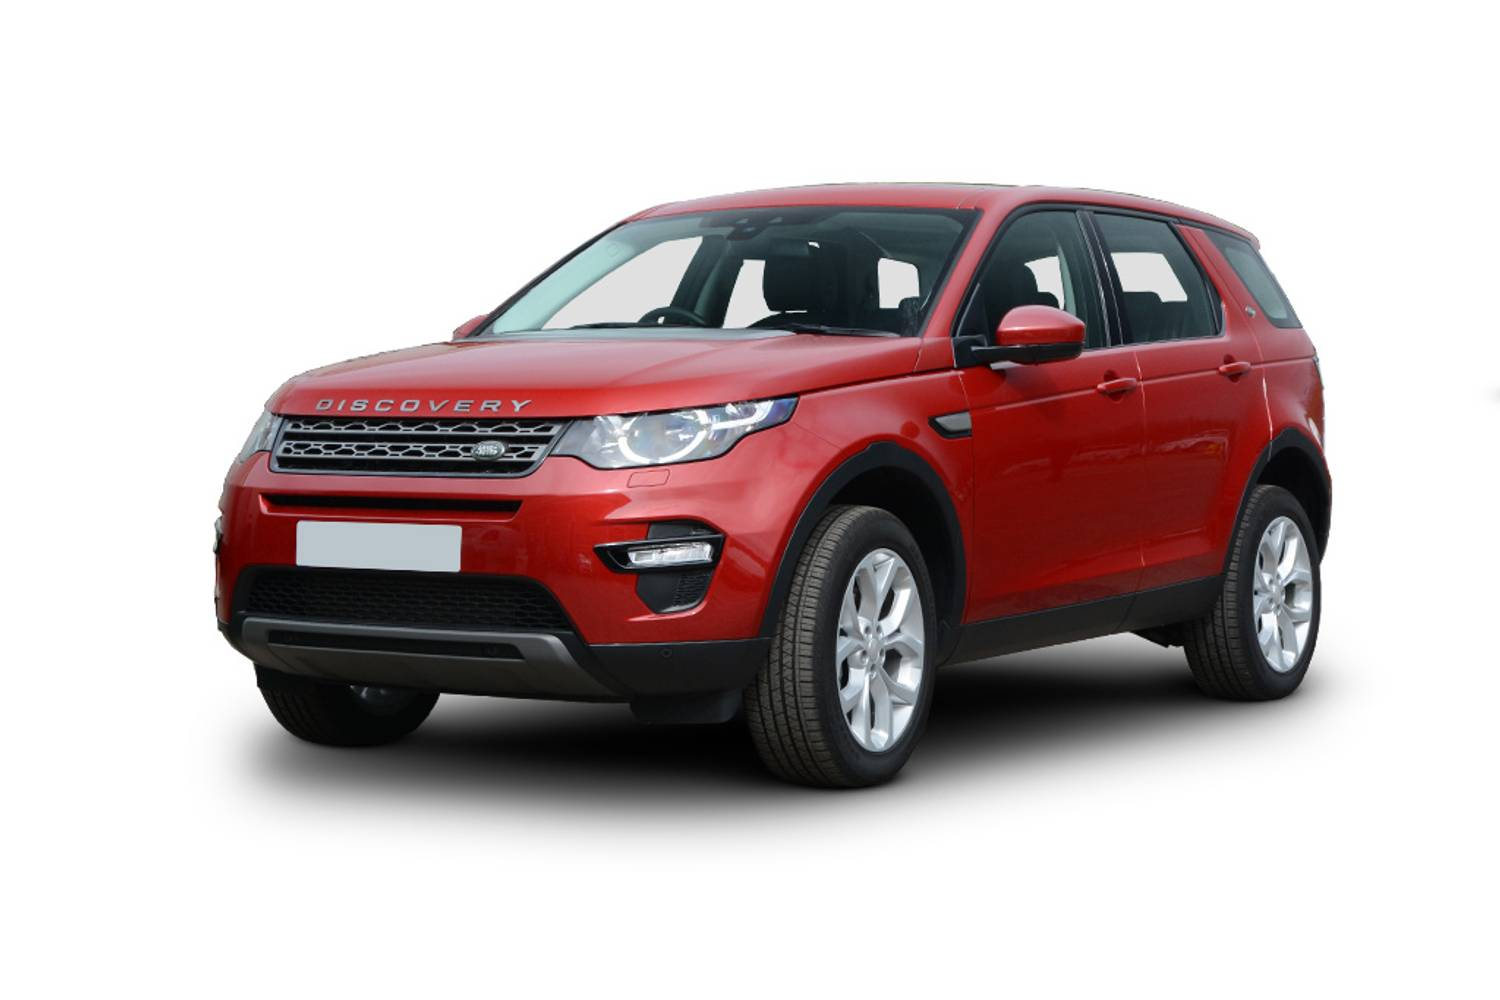 new land rover discovery sport diesel sw 2 0 ed4 pure 5 door 2wd 5 seats 2017 for sale. Black Bedroom Furniture Sets. Home Design Ideas